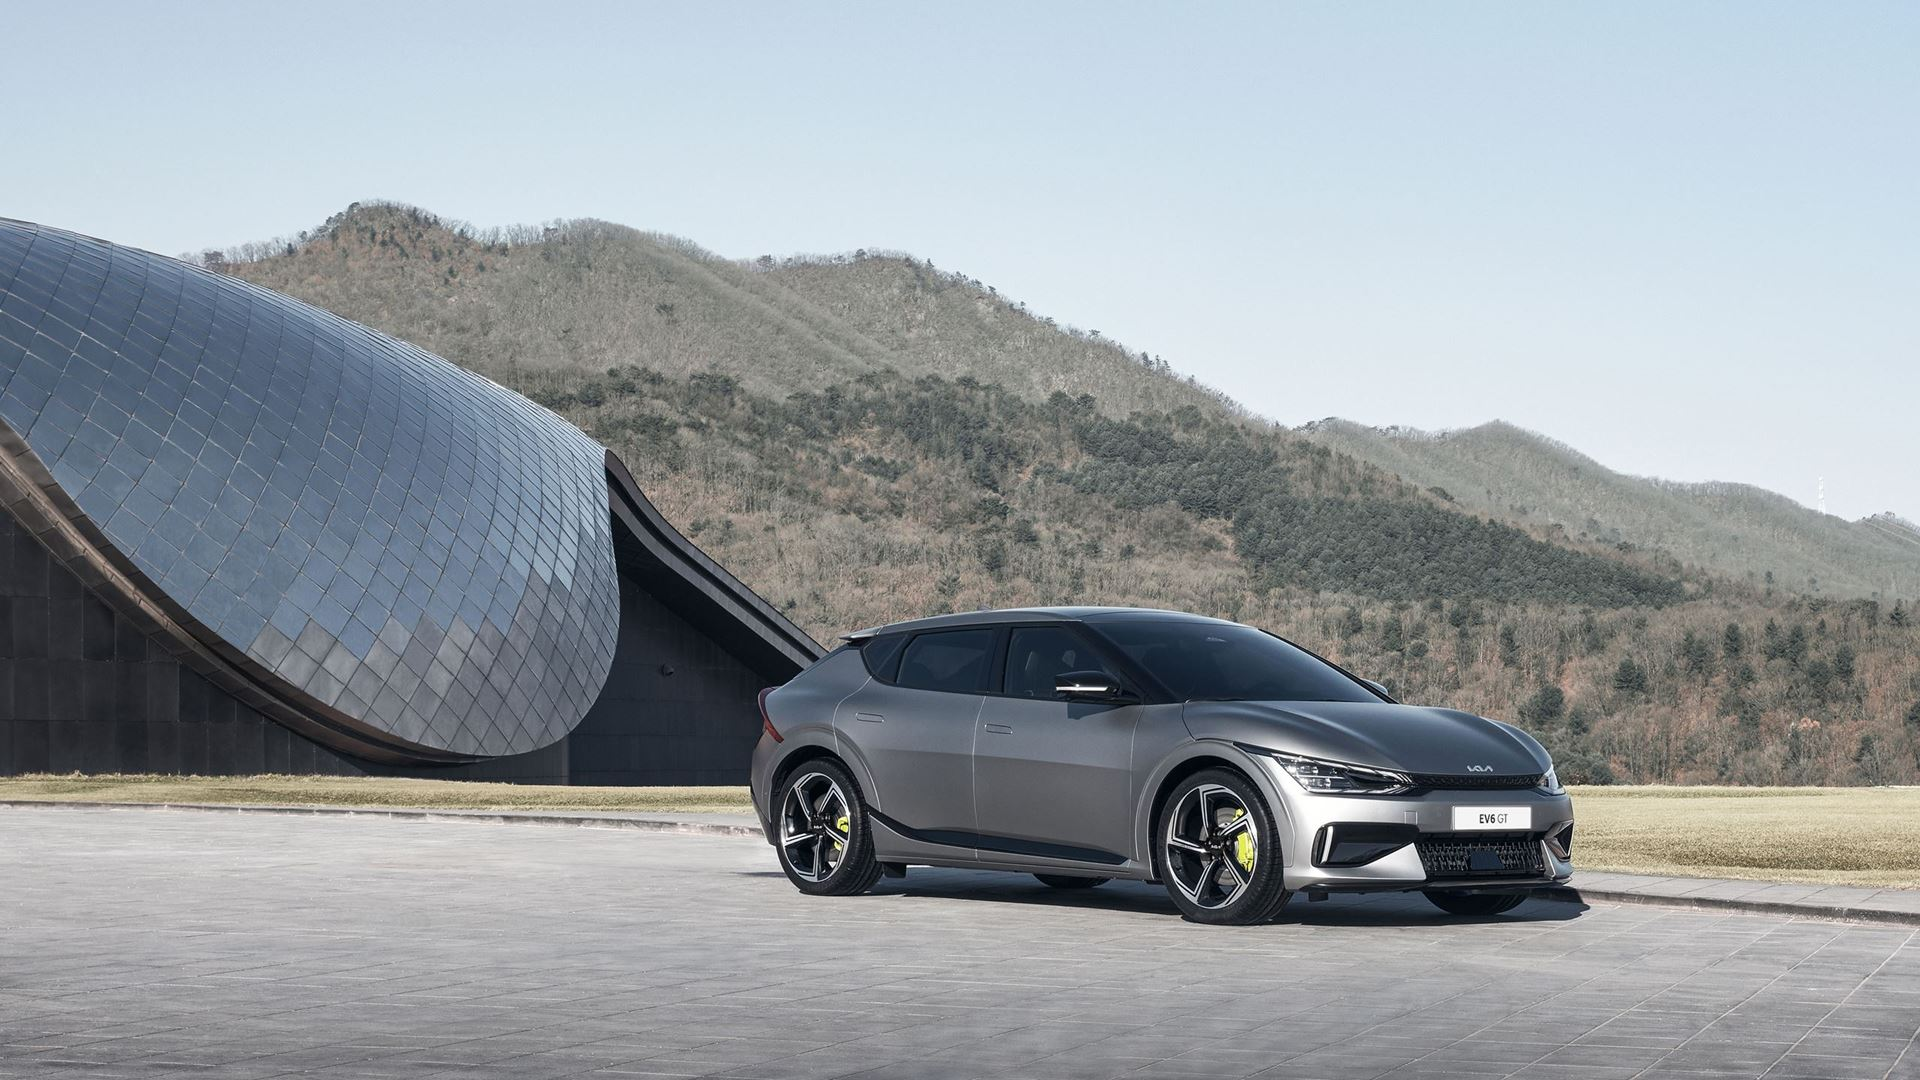 Kia EV6 redefines boundaries of electric mobility with inspiring design, exhilarating performance and innovative space - Image 8